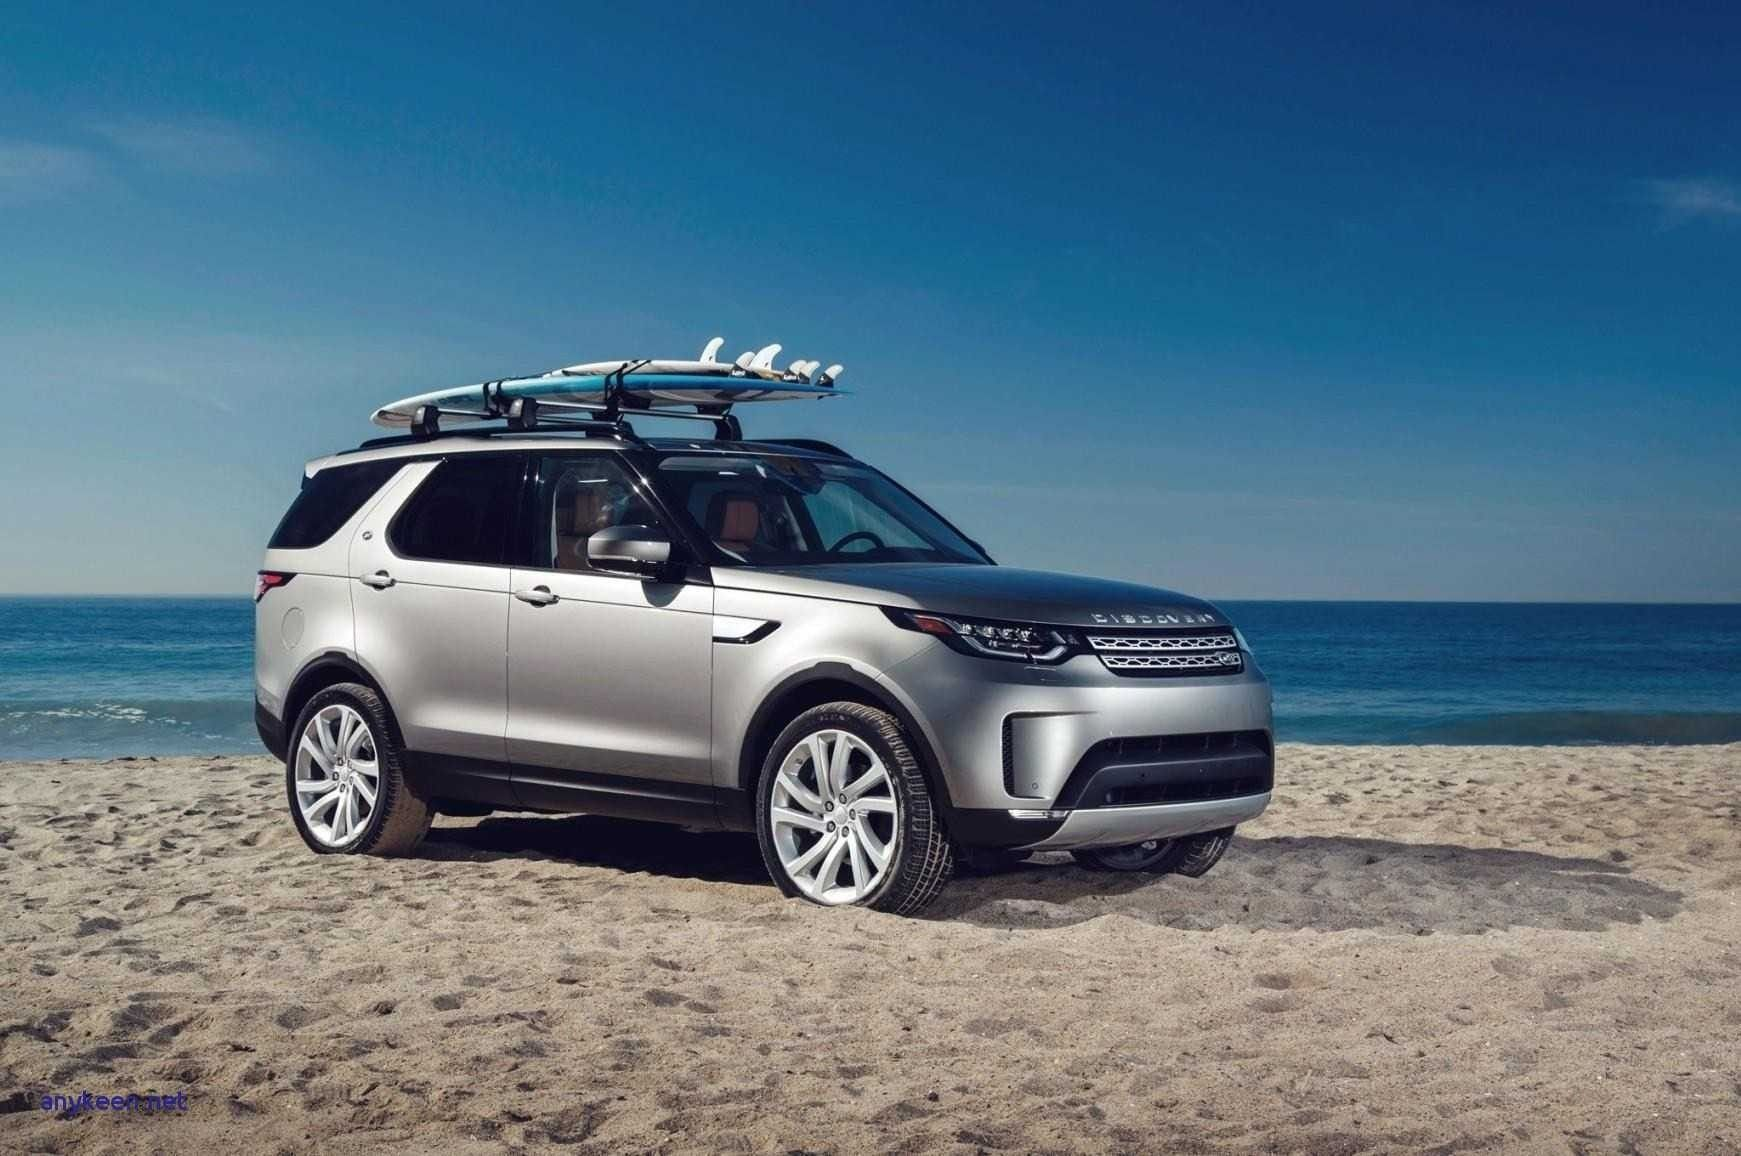 Land Rover Discovery 2019 Price Land rover discovery